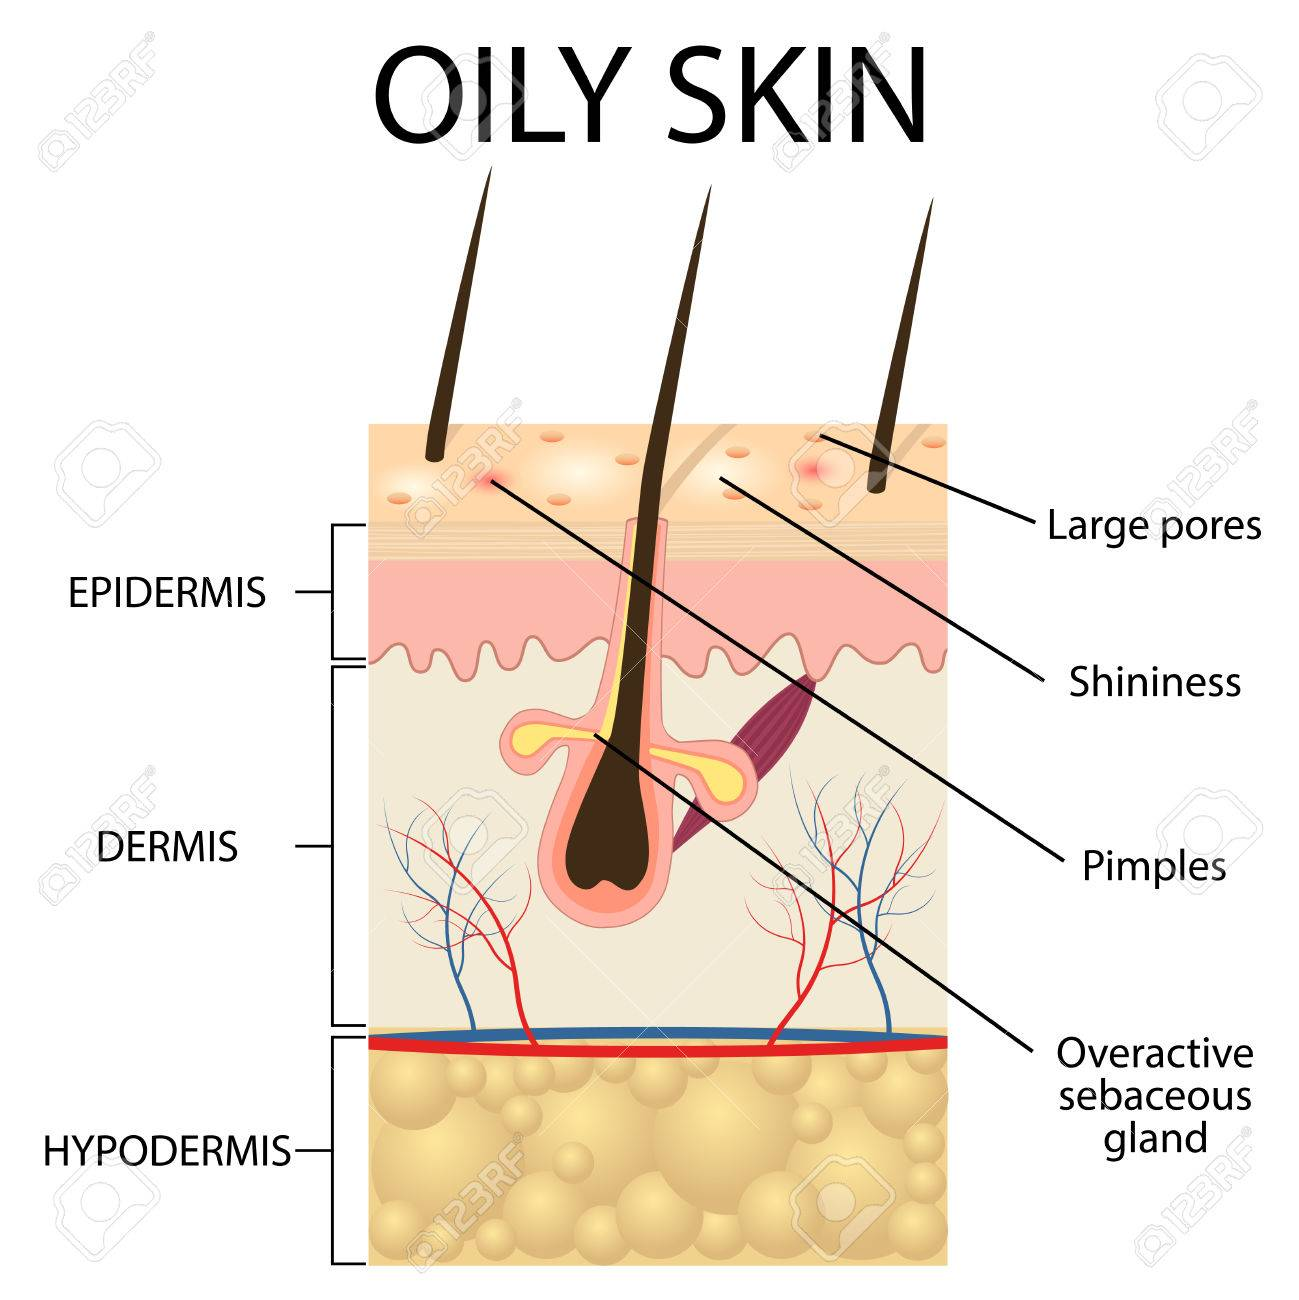 Illustration Of The Layers Of Oily Skin On The White Background